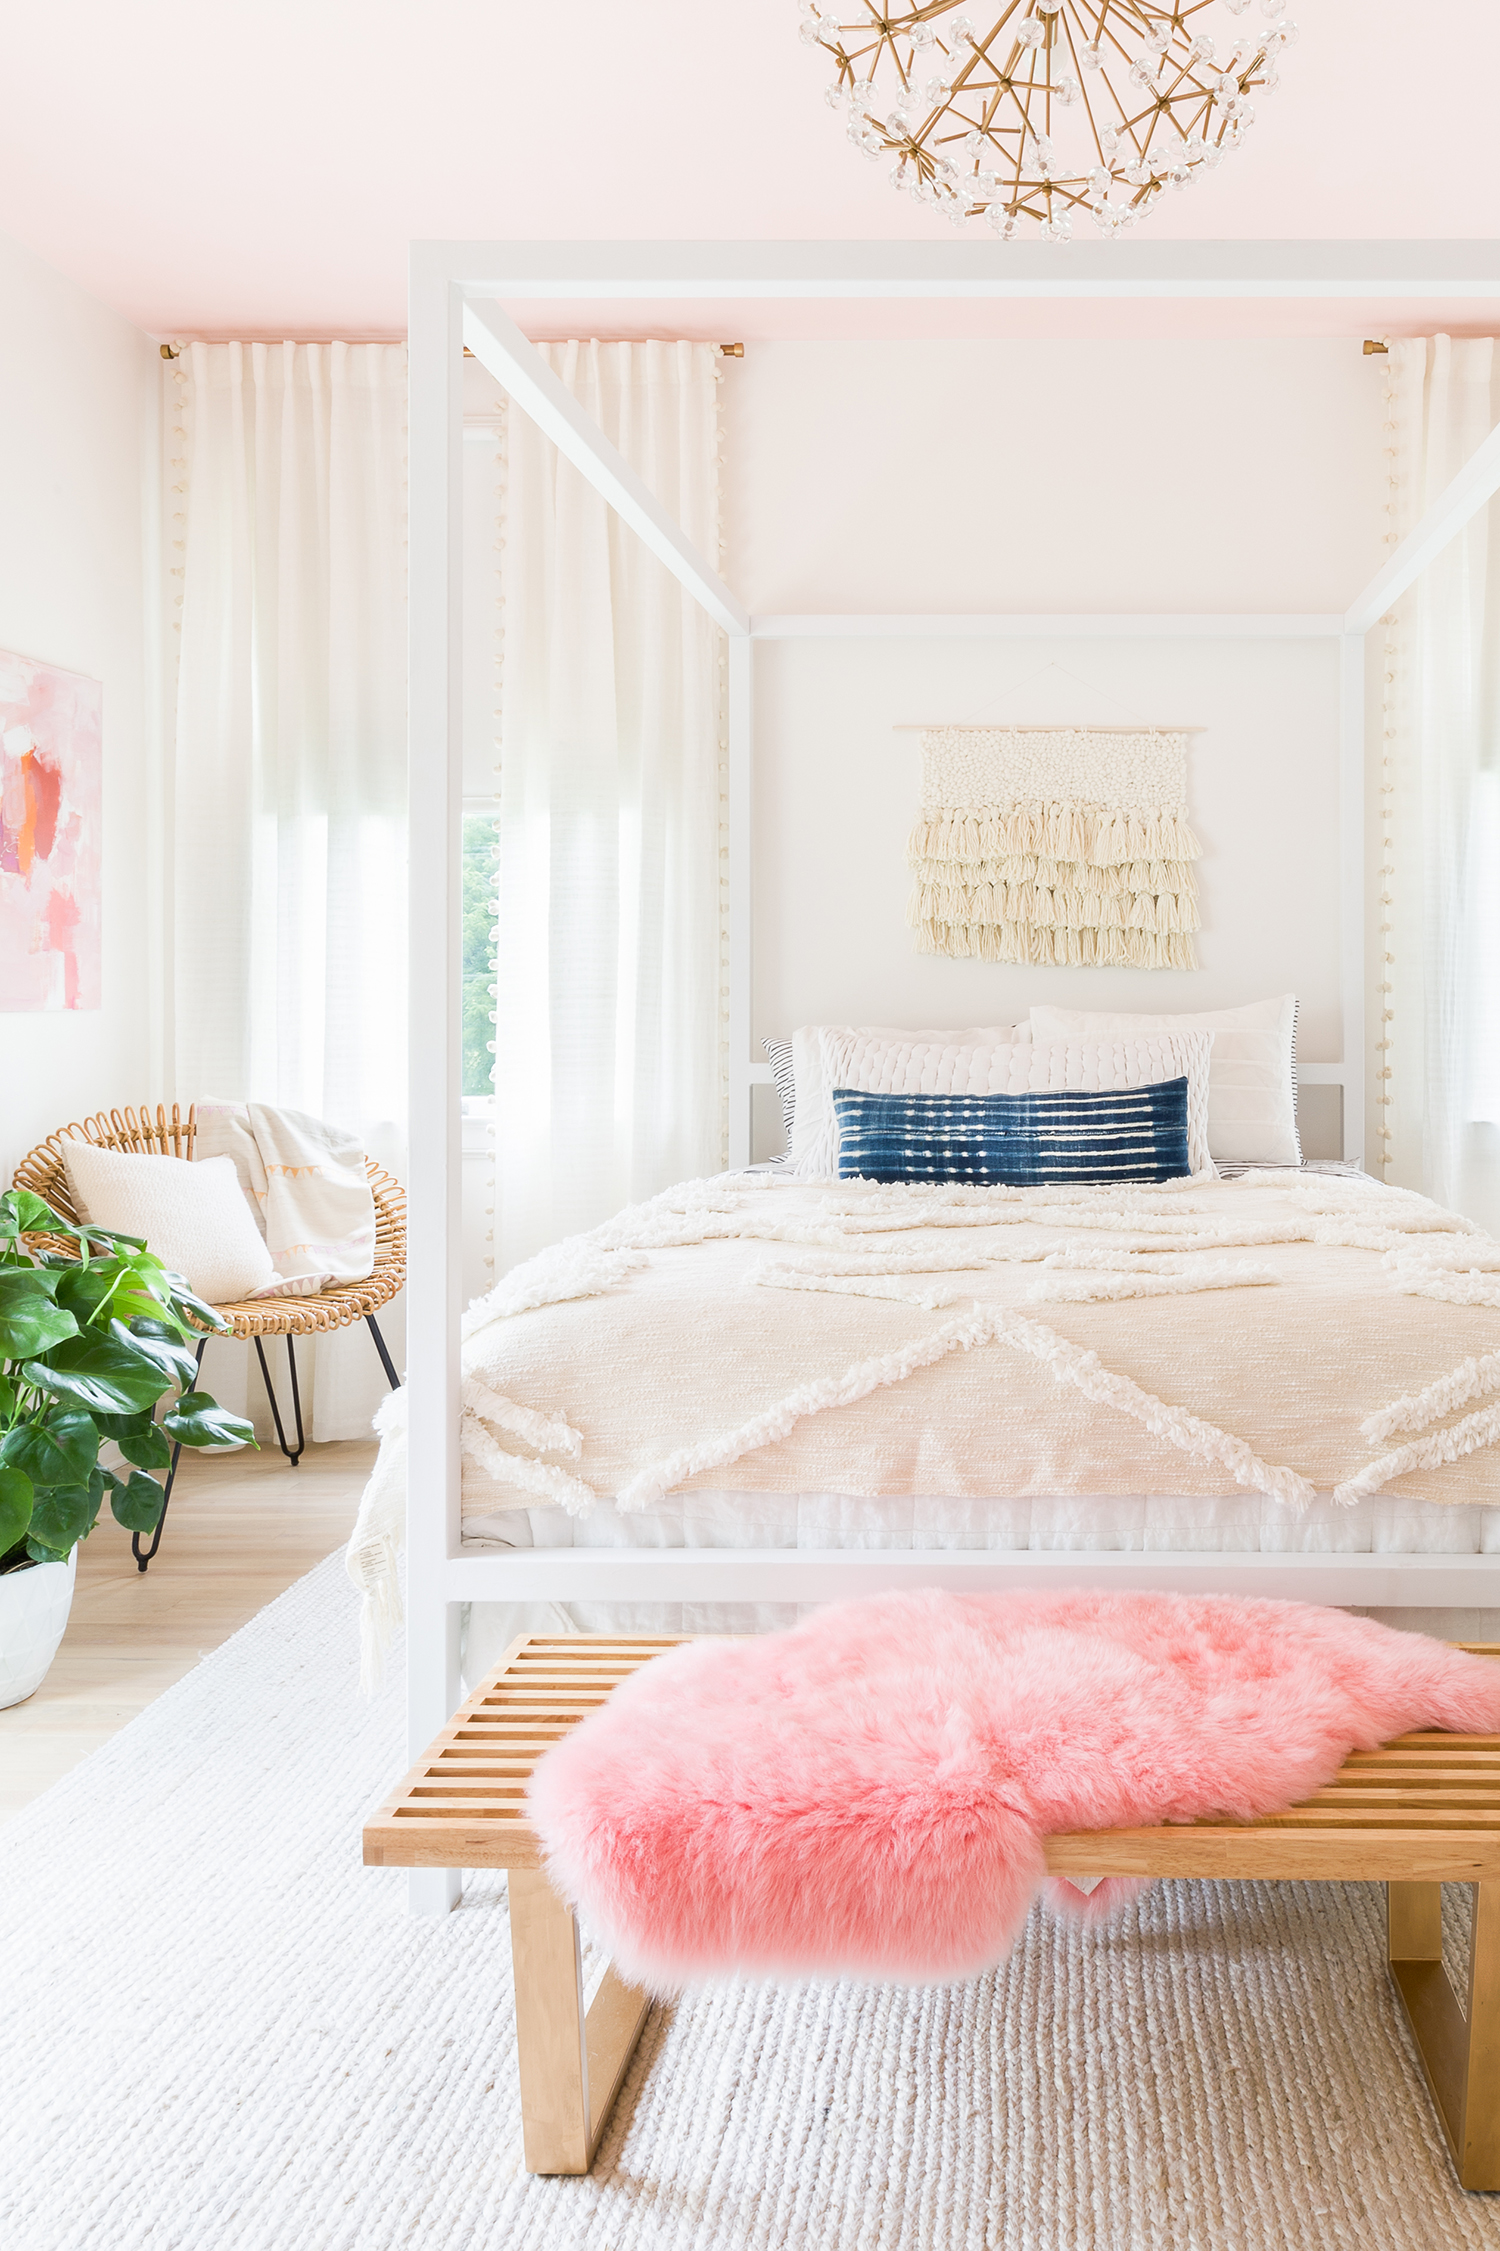 5 Beautiful Bedrooms on a Budget! Budget decorating ideas ... on Beautiful Room For Girls  id=96073